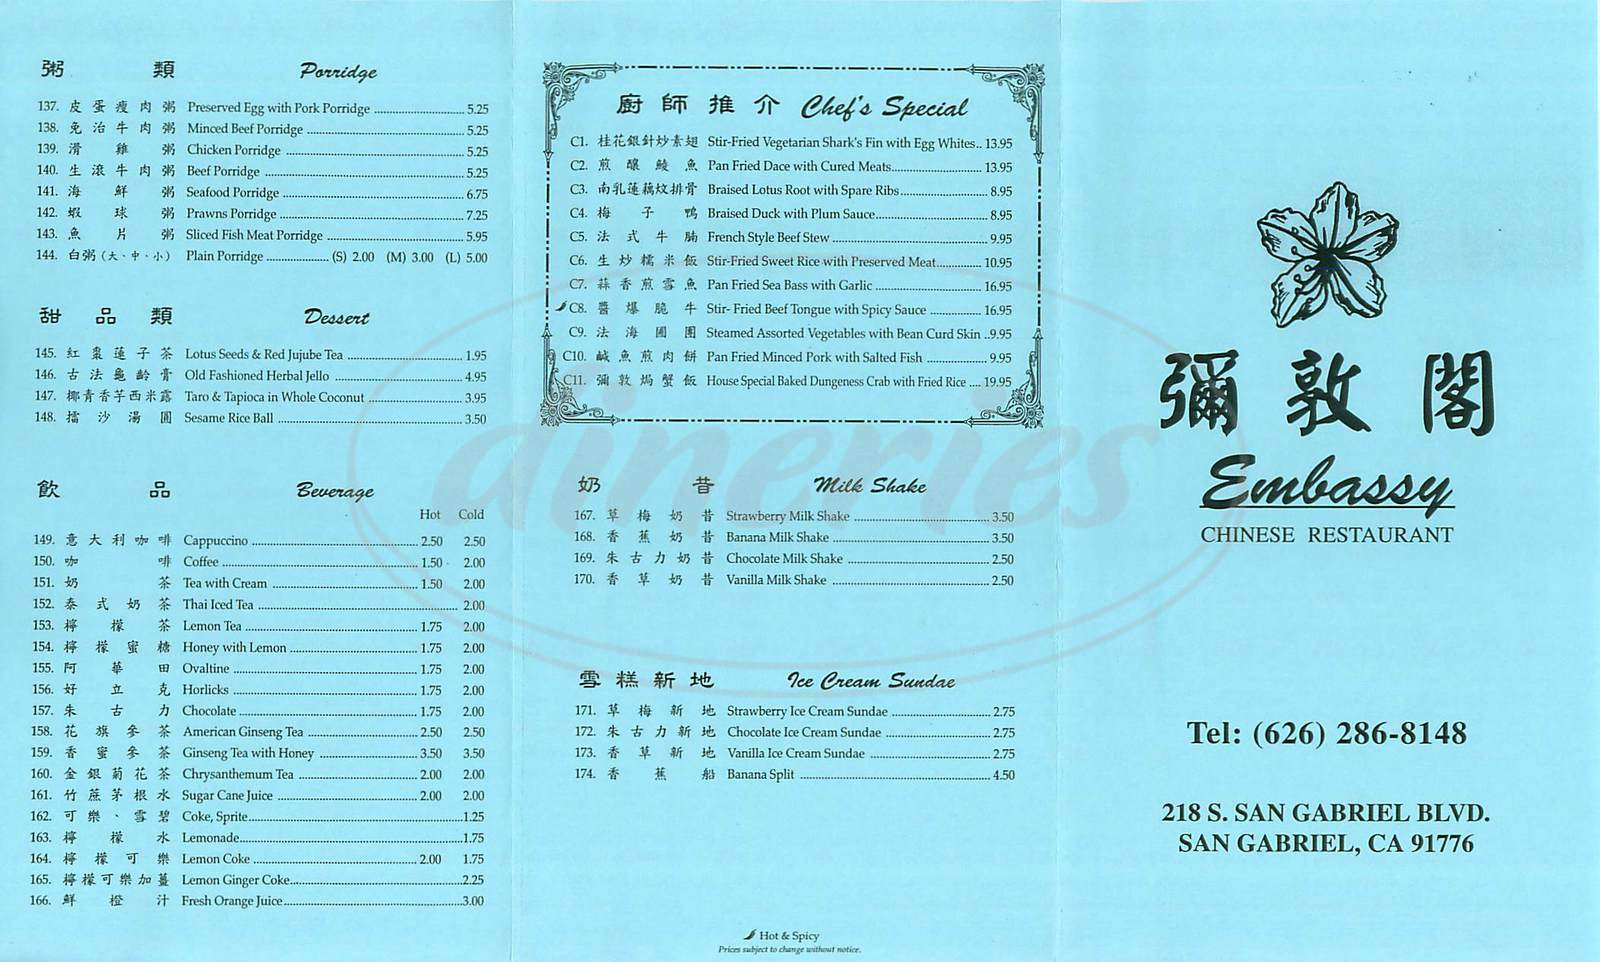 menu for Embassy Chinese Restaurant